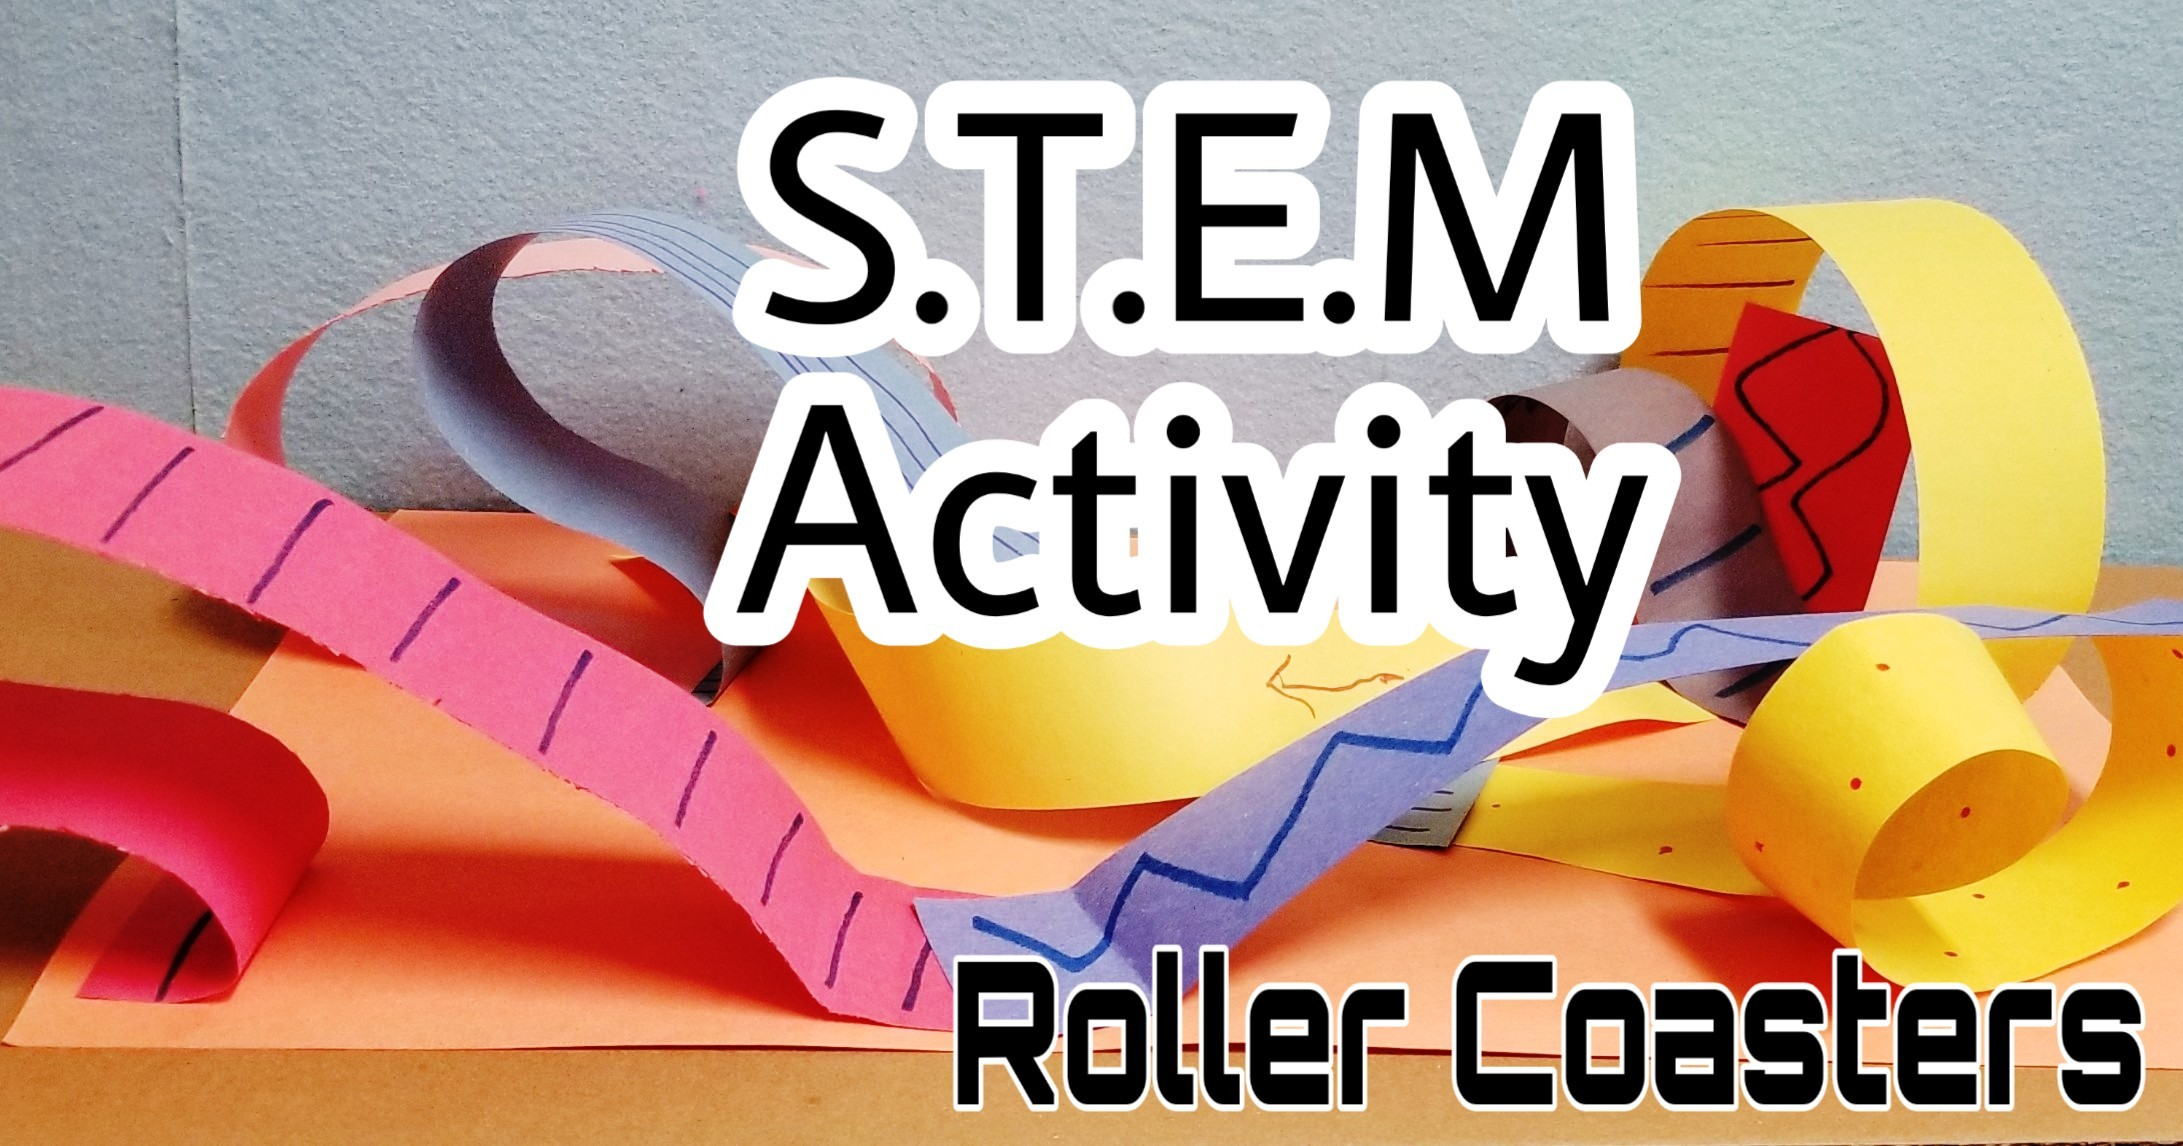 STEM Activity - Roller Coasters - Hands-On Teaching Ideas ...